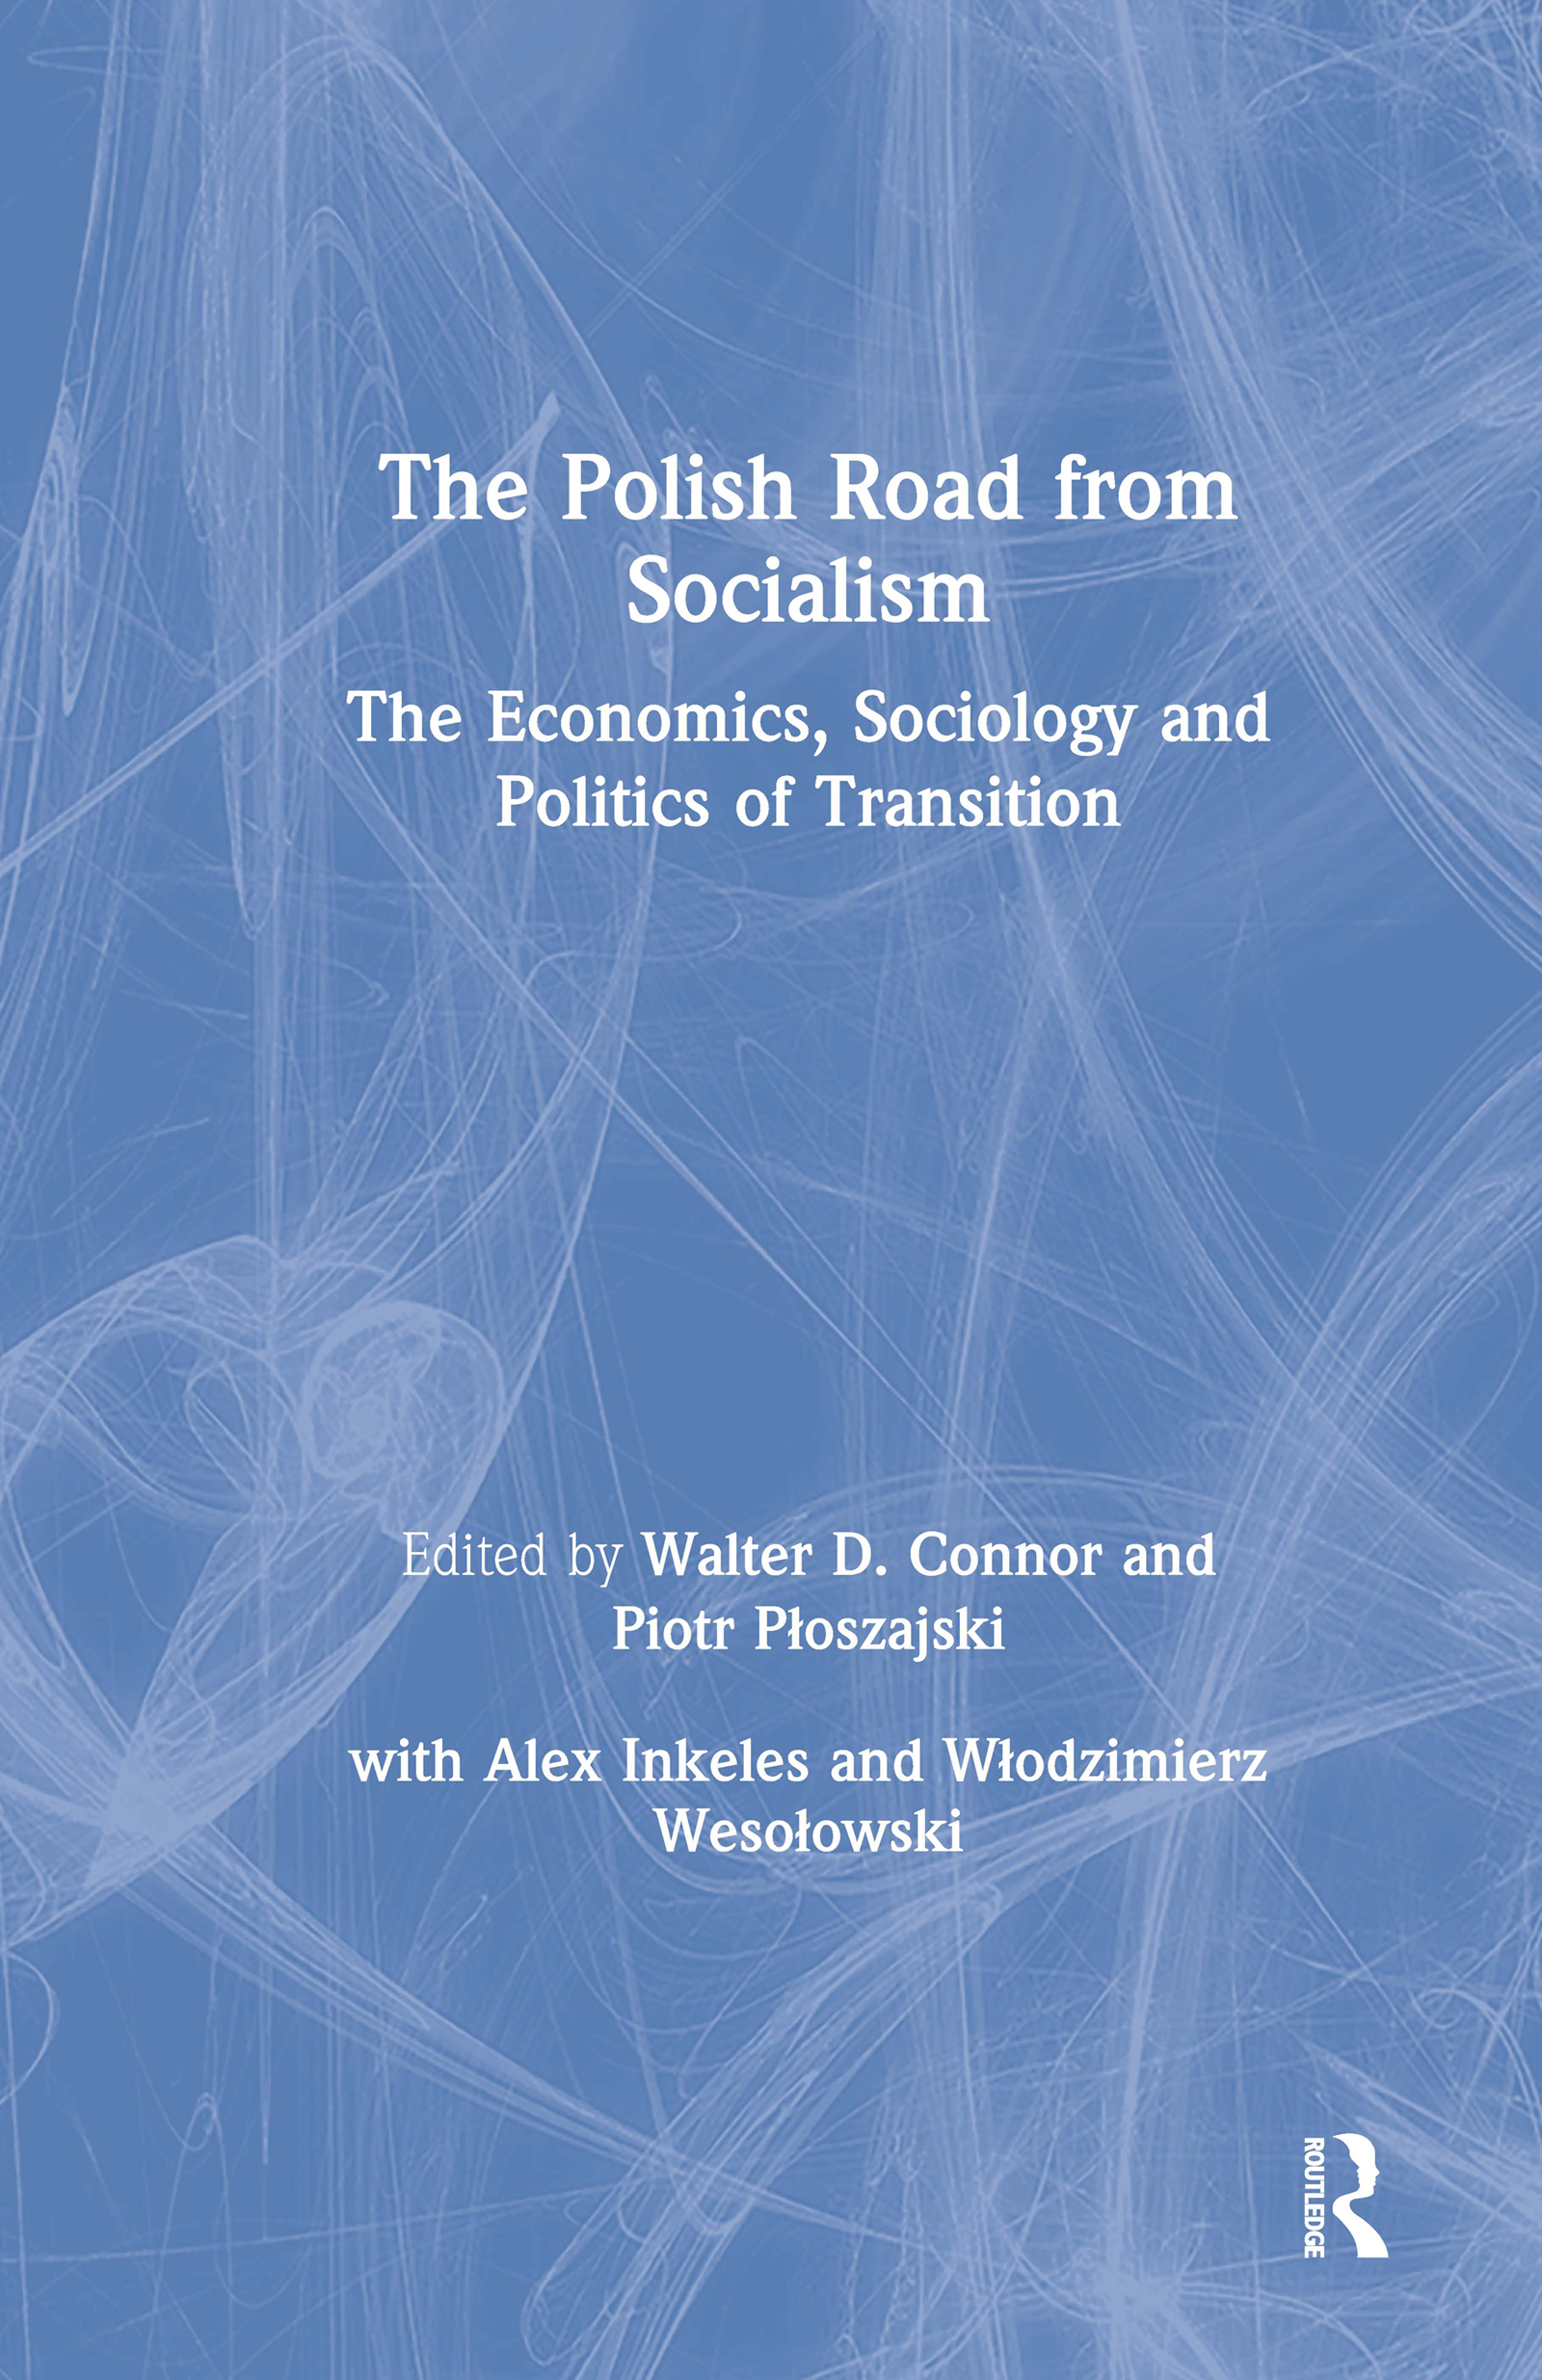 The Polish Road from Socialism: The Economics, Sociology and Politics of Transition: The Economics, Sociology and Politics of Transition, 1st Edition (Hardback) book cover